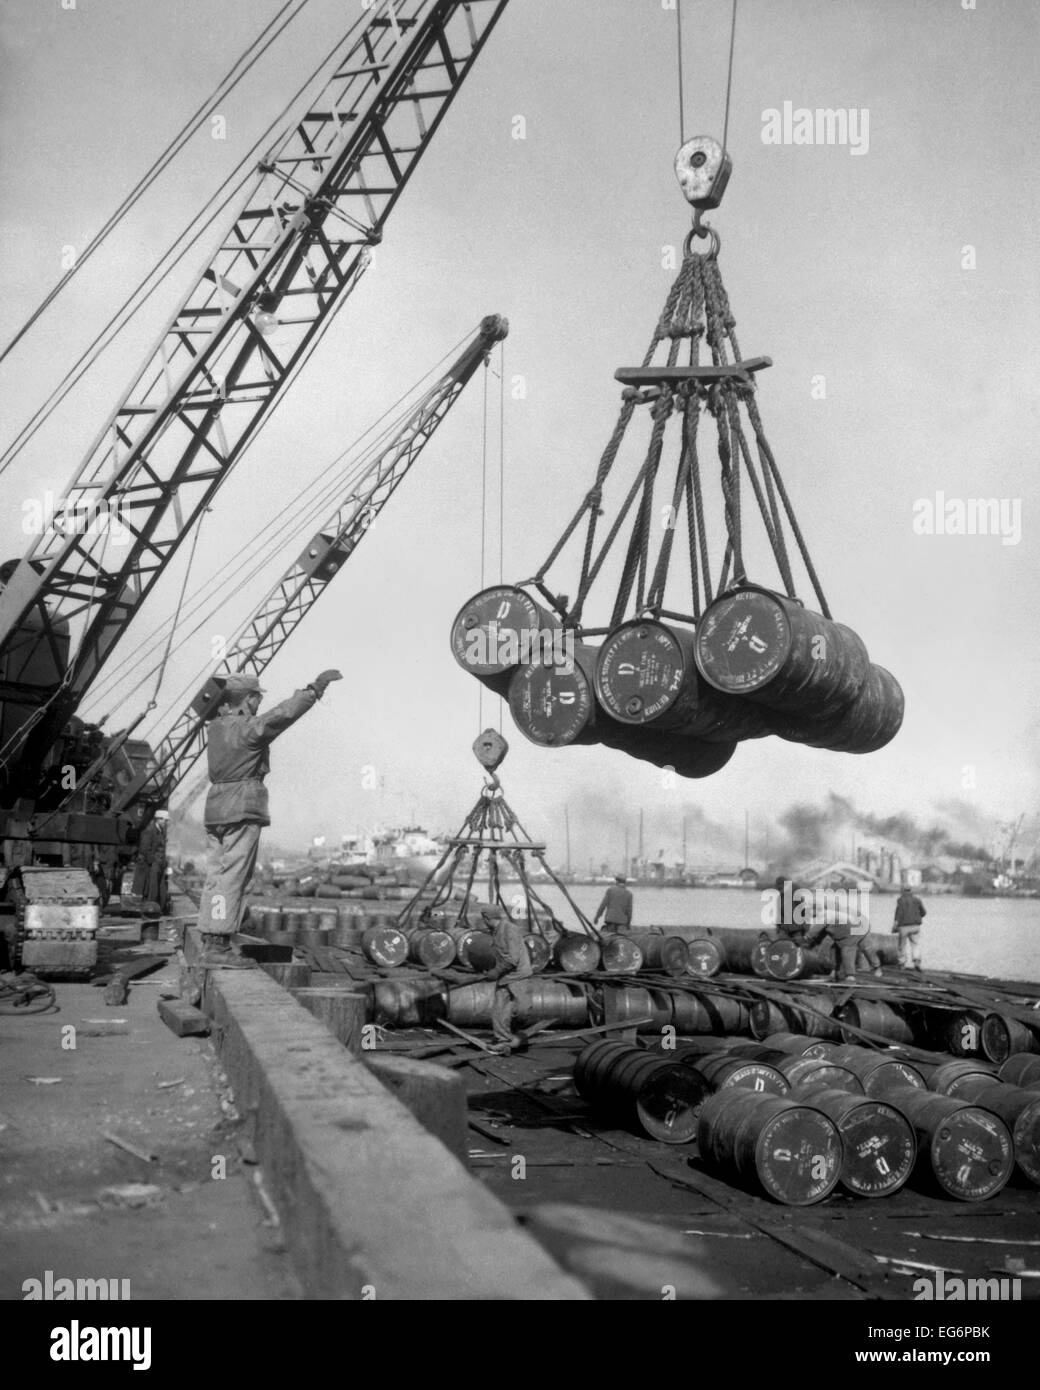 Fuel Drums Are Lifted And Moved With Cranes From A Tanker At Inchon Harbor Korea